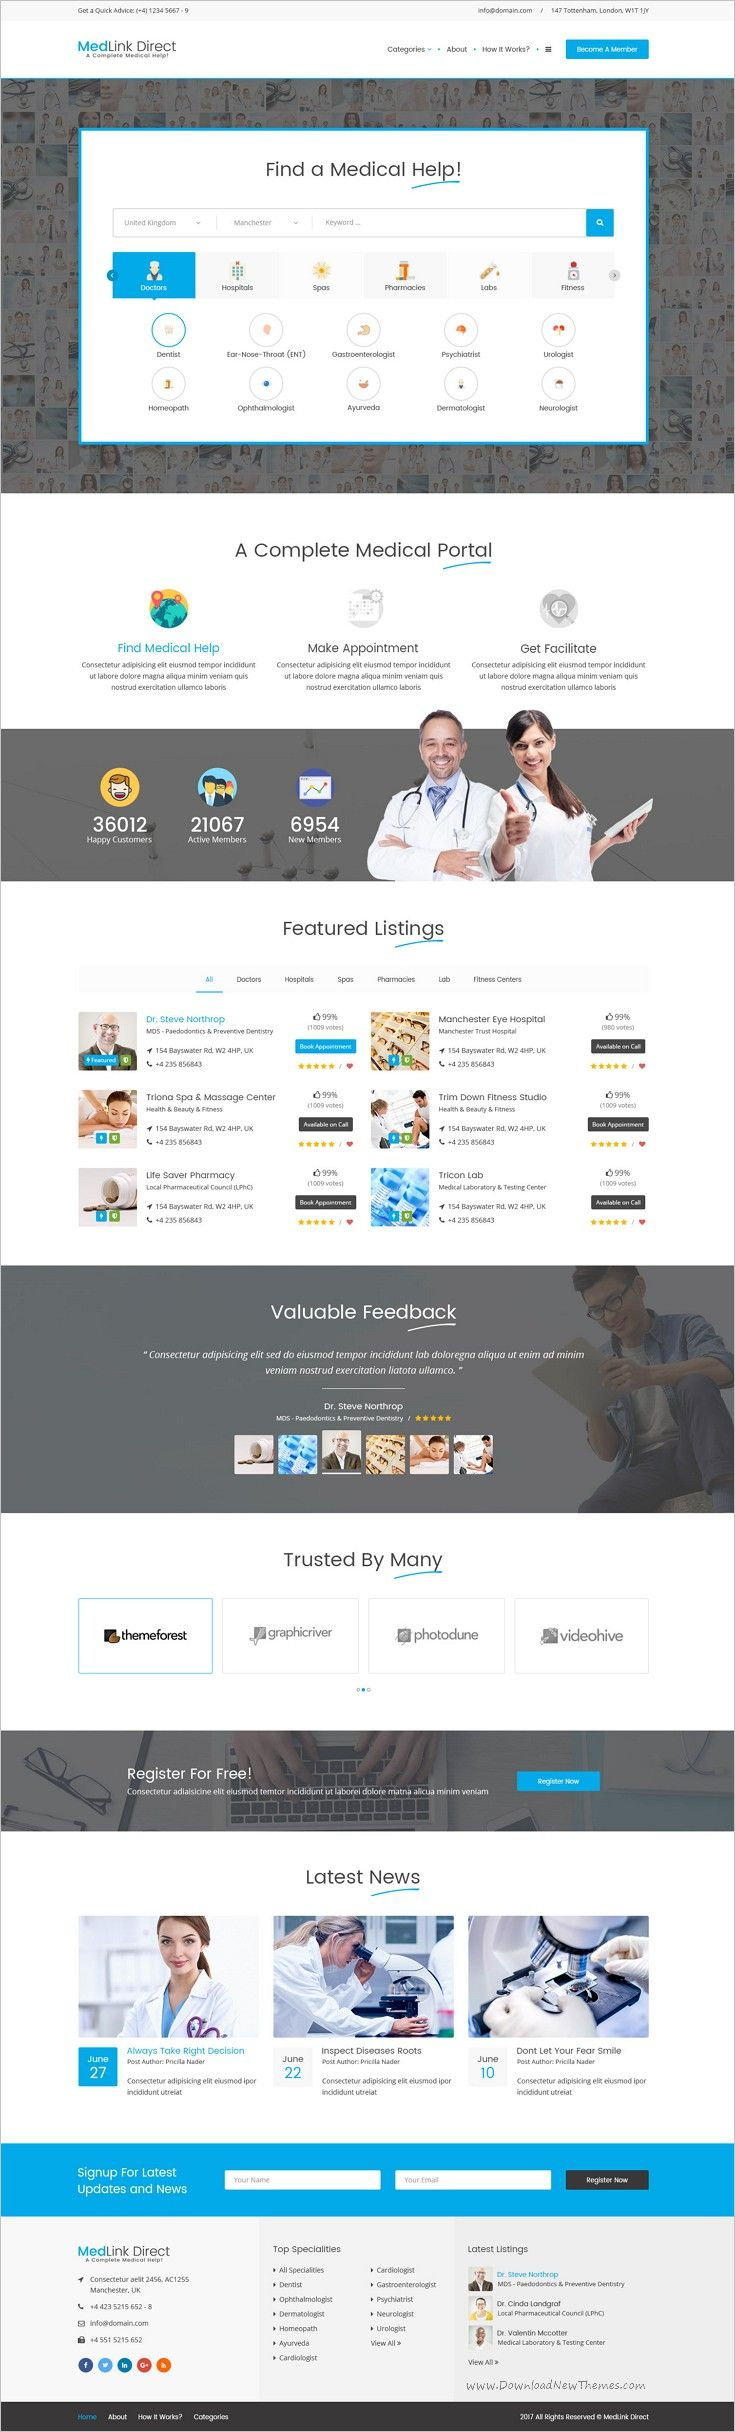 Medlink derect directory is a wonderful #PSD template for complete #medical #directory #listing websites download now➩ https://themeforest.net/item/doctor-directory-psd-template/18910613?ref=Datasata